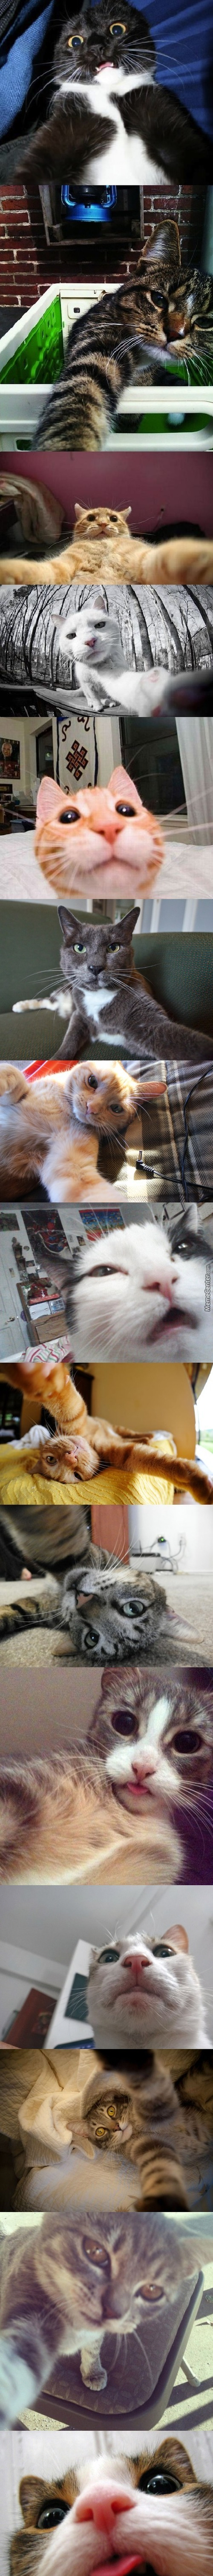 Cat Selfies [Sorry Long Post...] [Do What You Want With These]